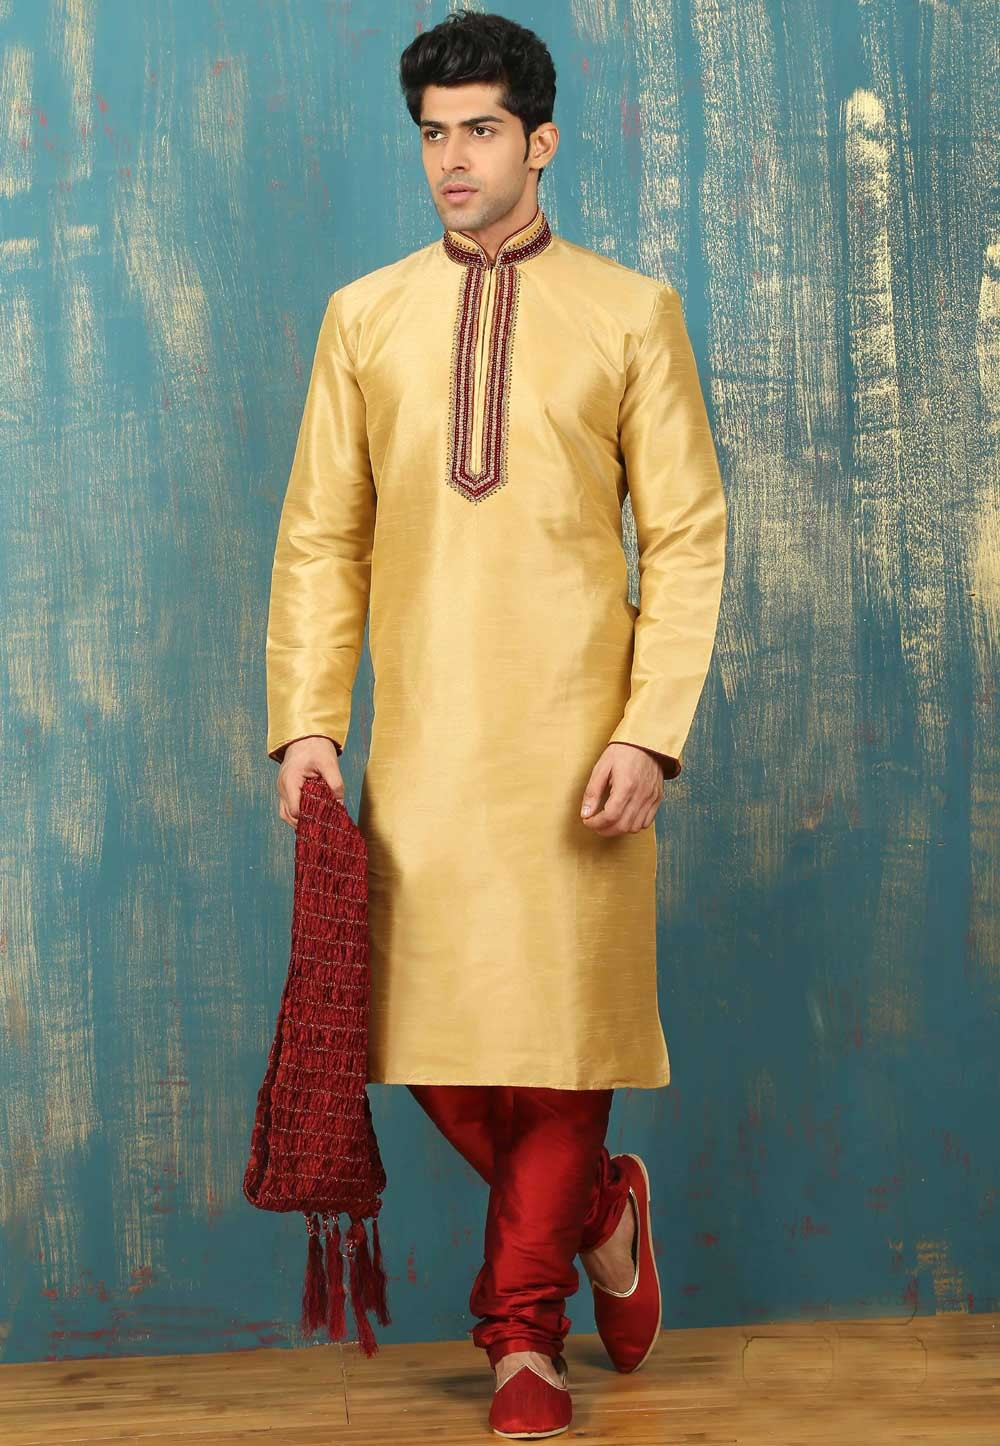 Exquisite Golden Color Dupion Art Silk Readymade Kurta Pajama.